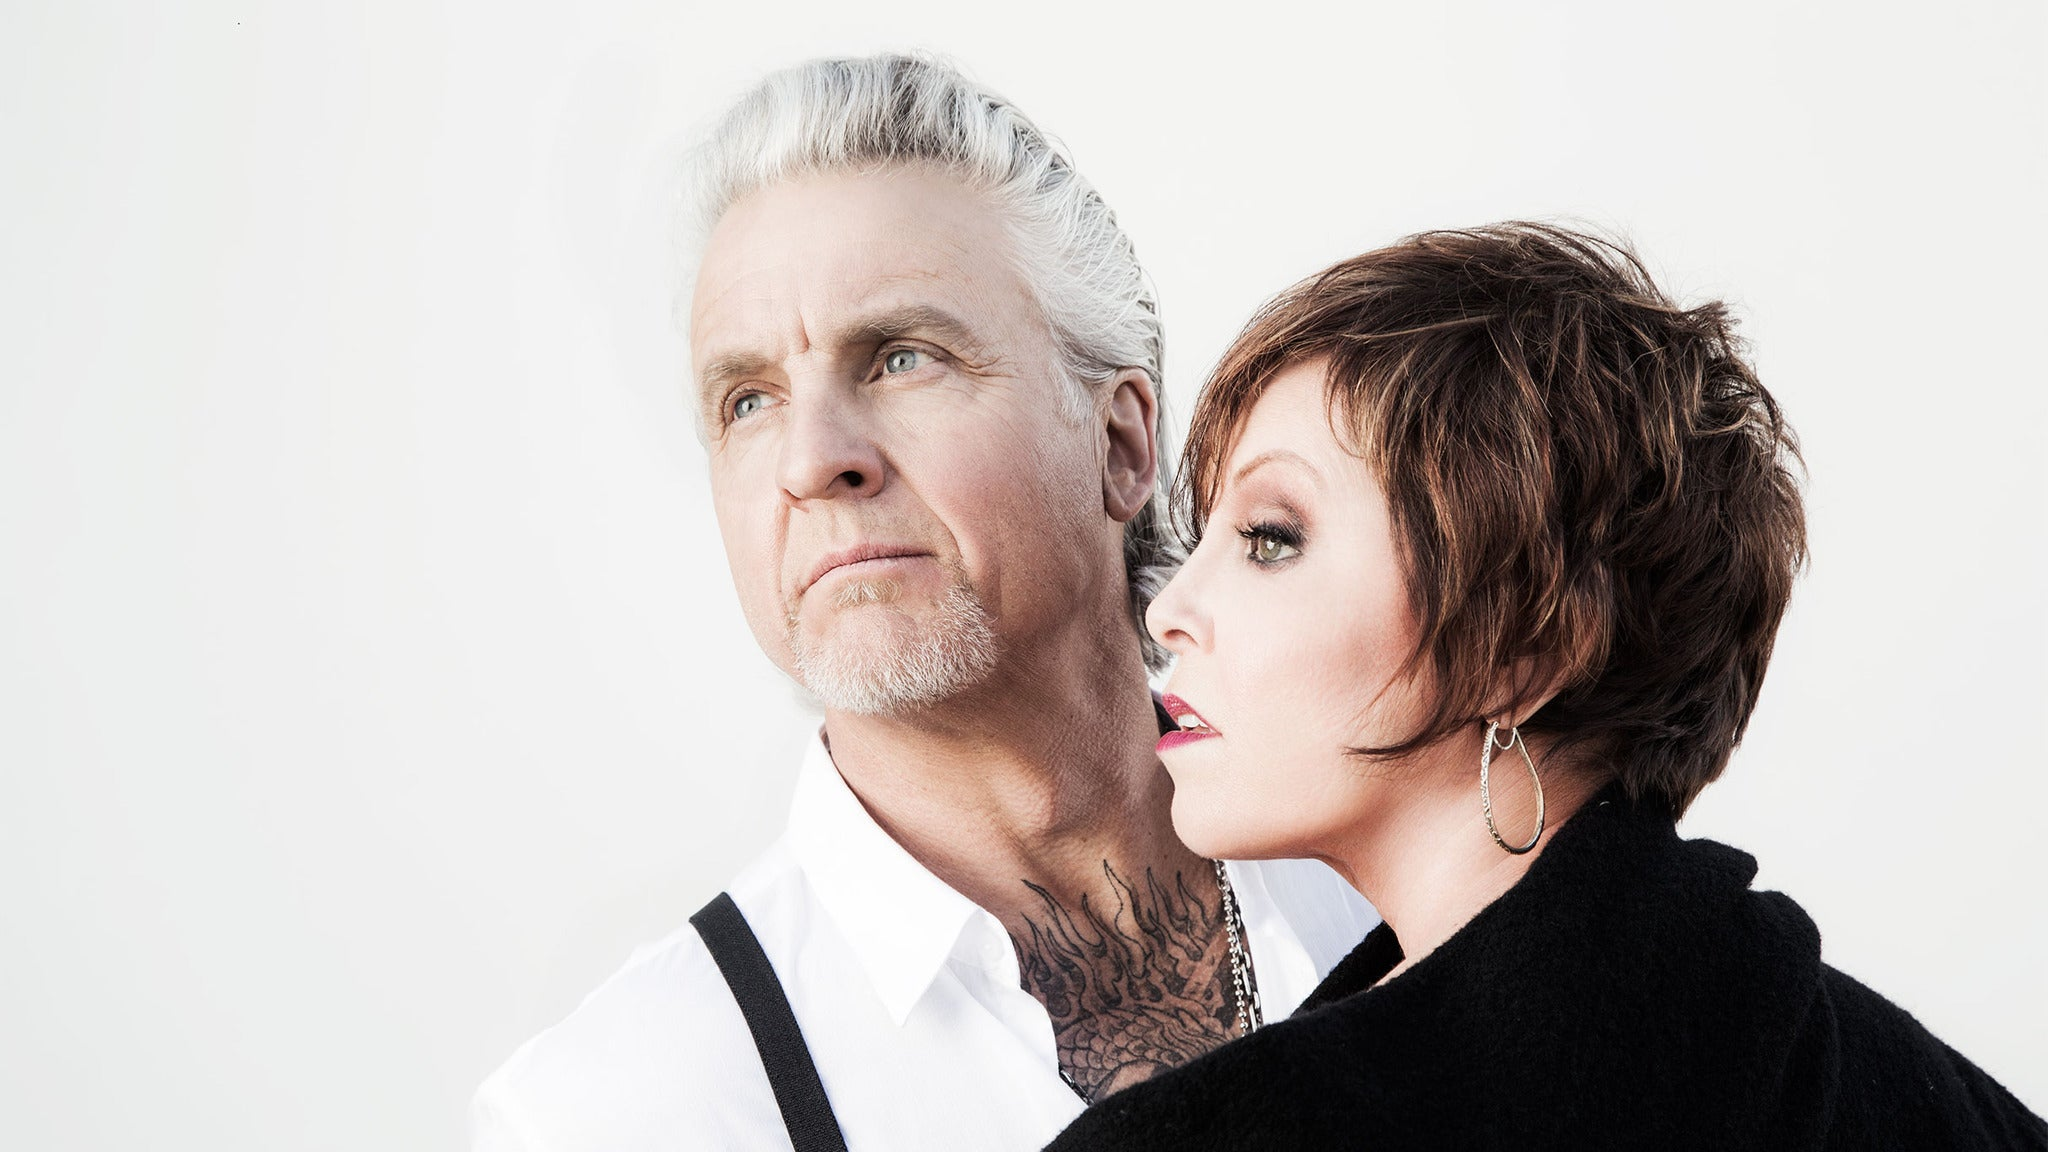 Pat Benatar & Neil Giraldo: We Live For Love Tour